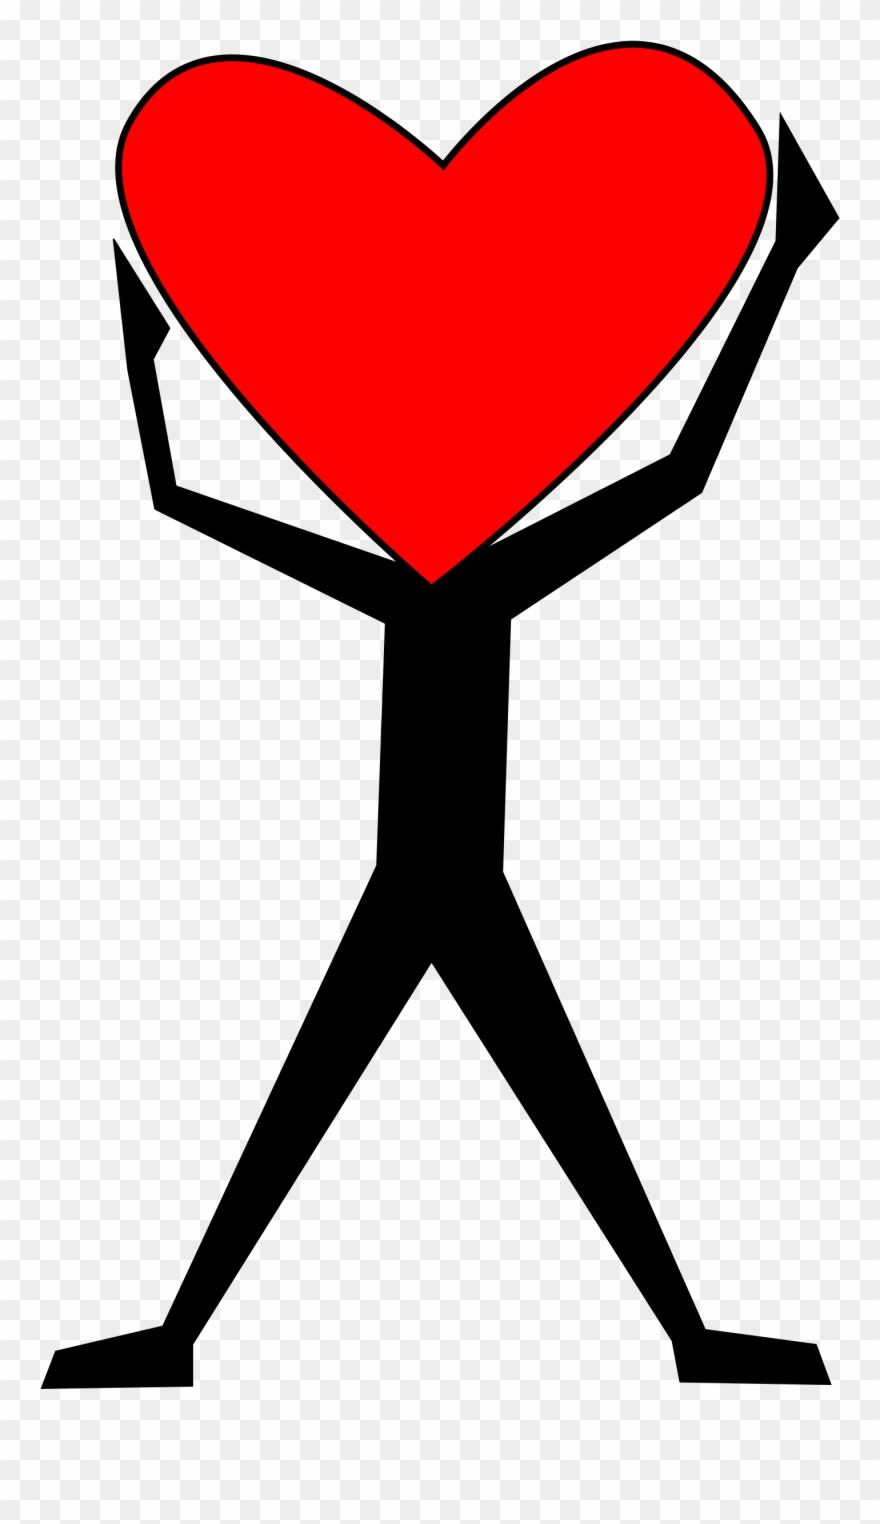 Hearts clipart man. Person icon with heart